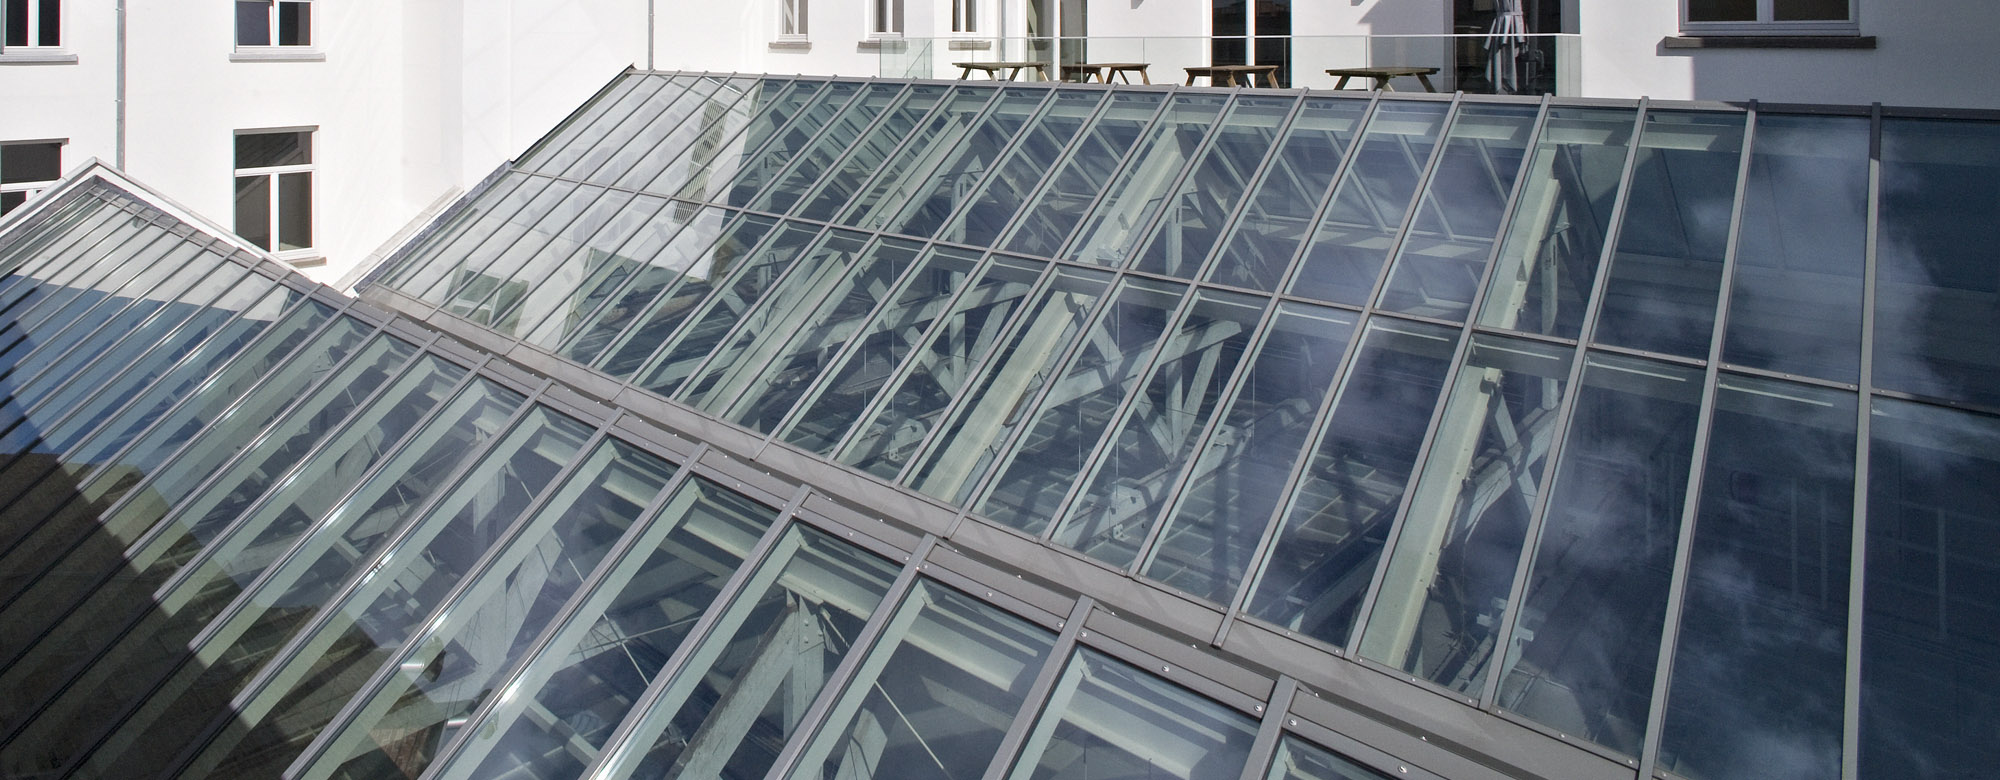 Forzon - Glass roof 03